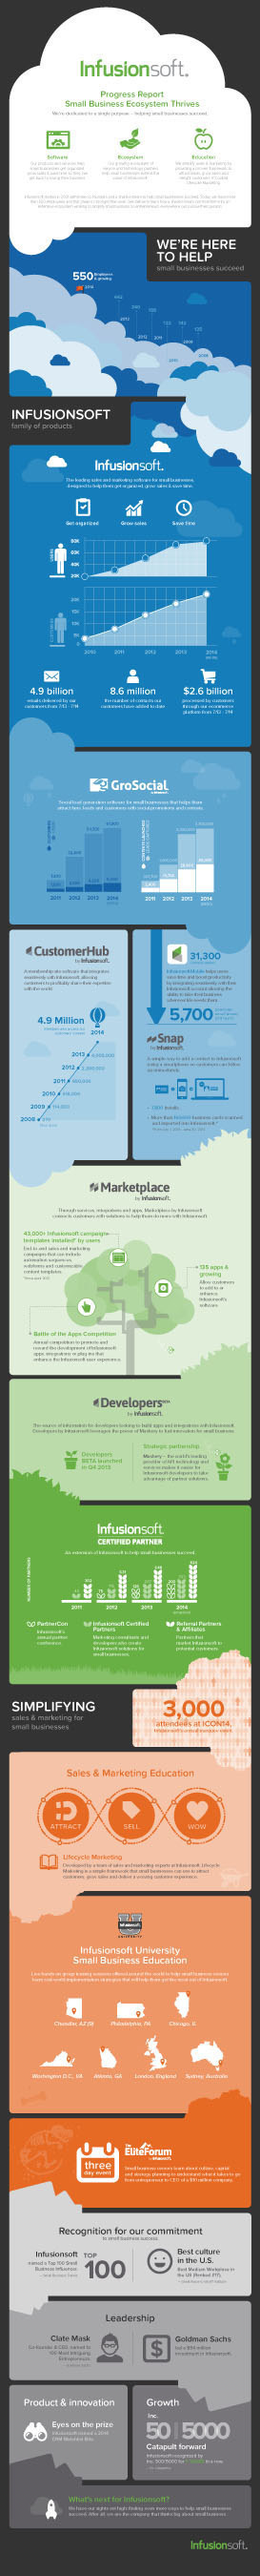 Infusionsoft Ecosystem Infographic, for more information visit infusionsoft.com (PRNewsFoto/Infusionsoft)